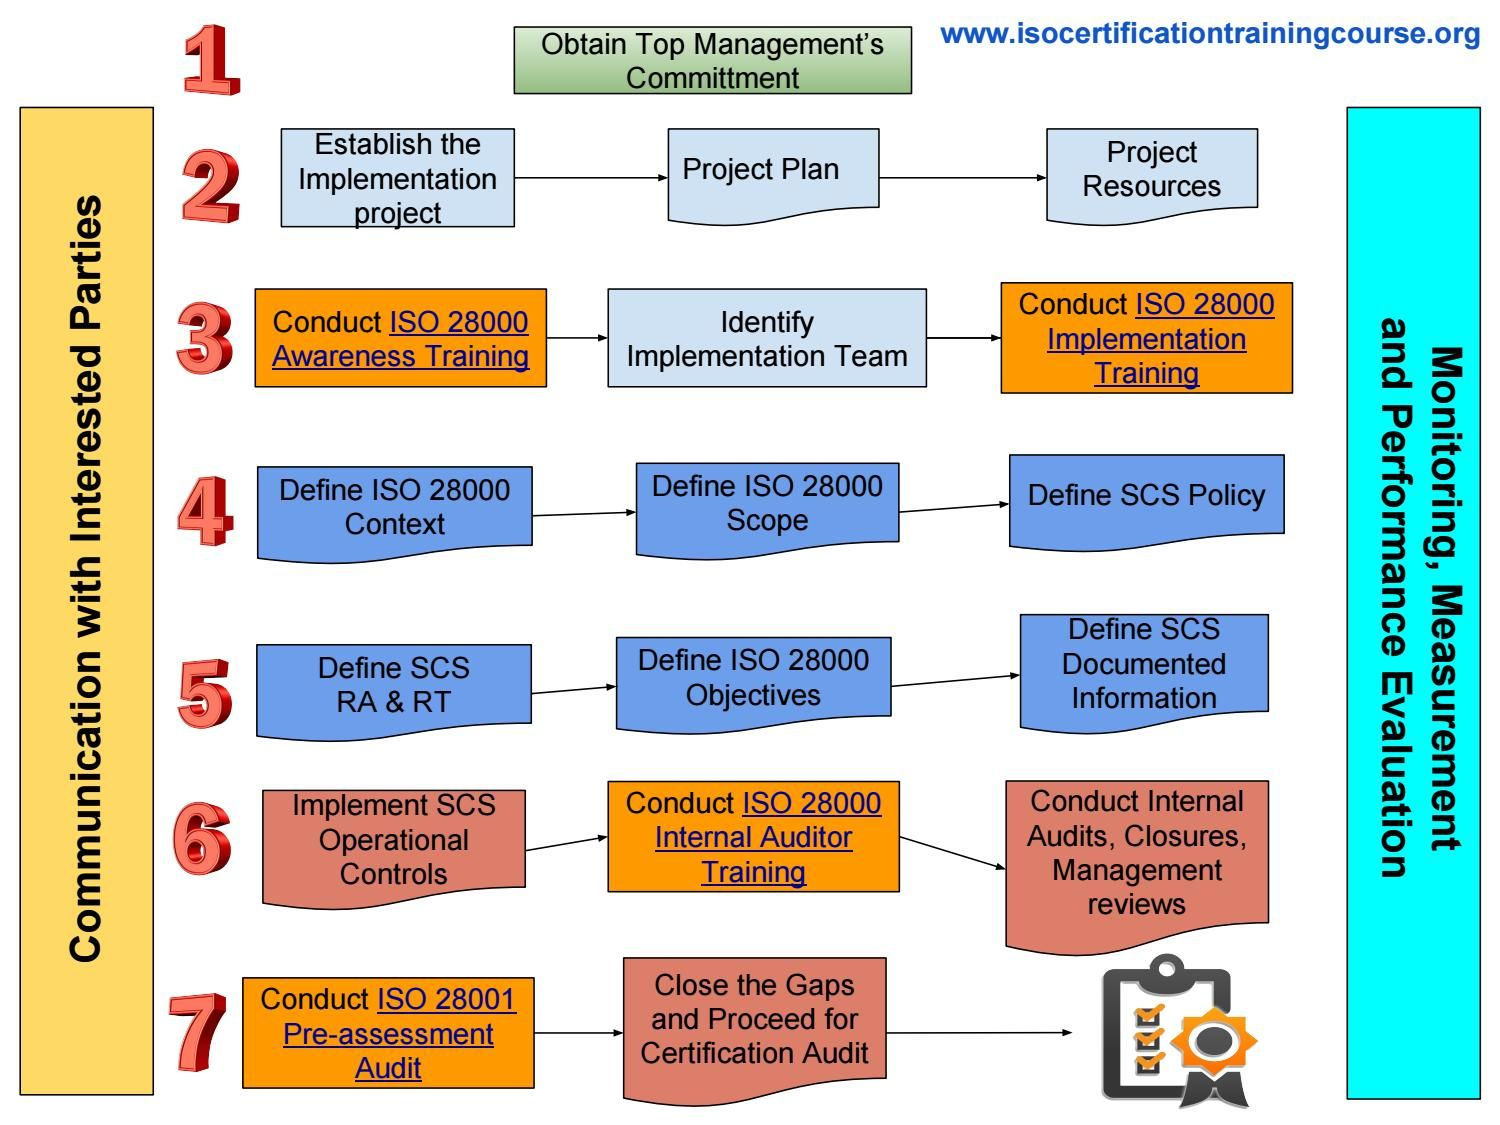 To prepare for iso 28000 certification process step by step for how to prepare for iso 28000 certification process step by step for auditee organizations 1betcityfo Choice Image